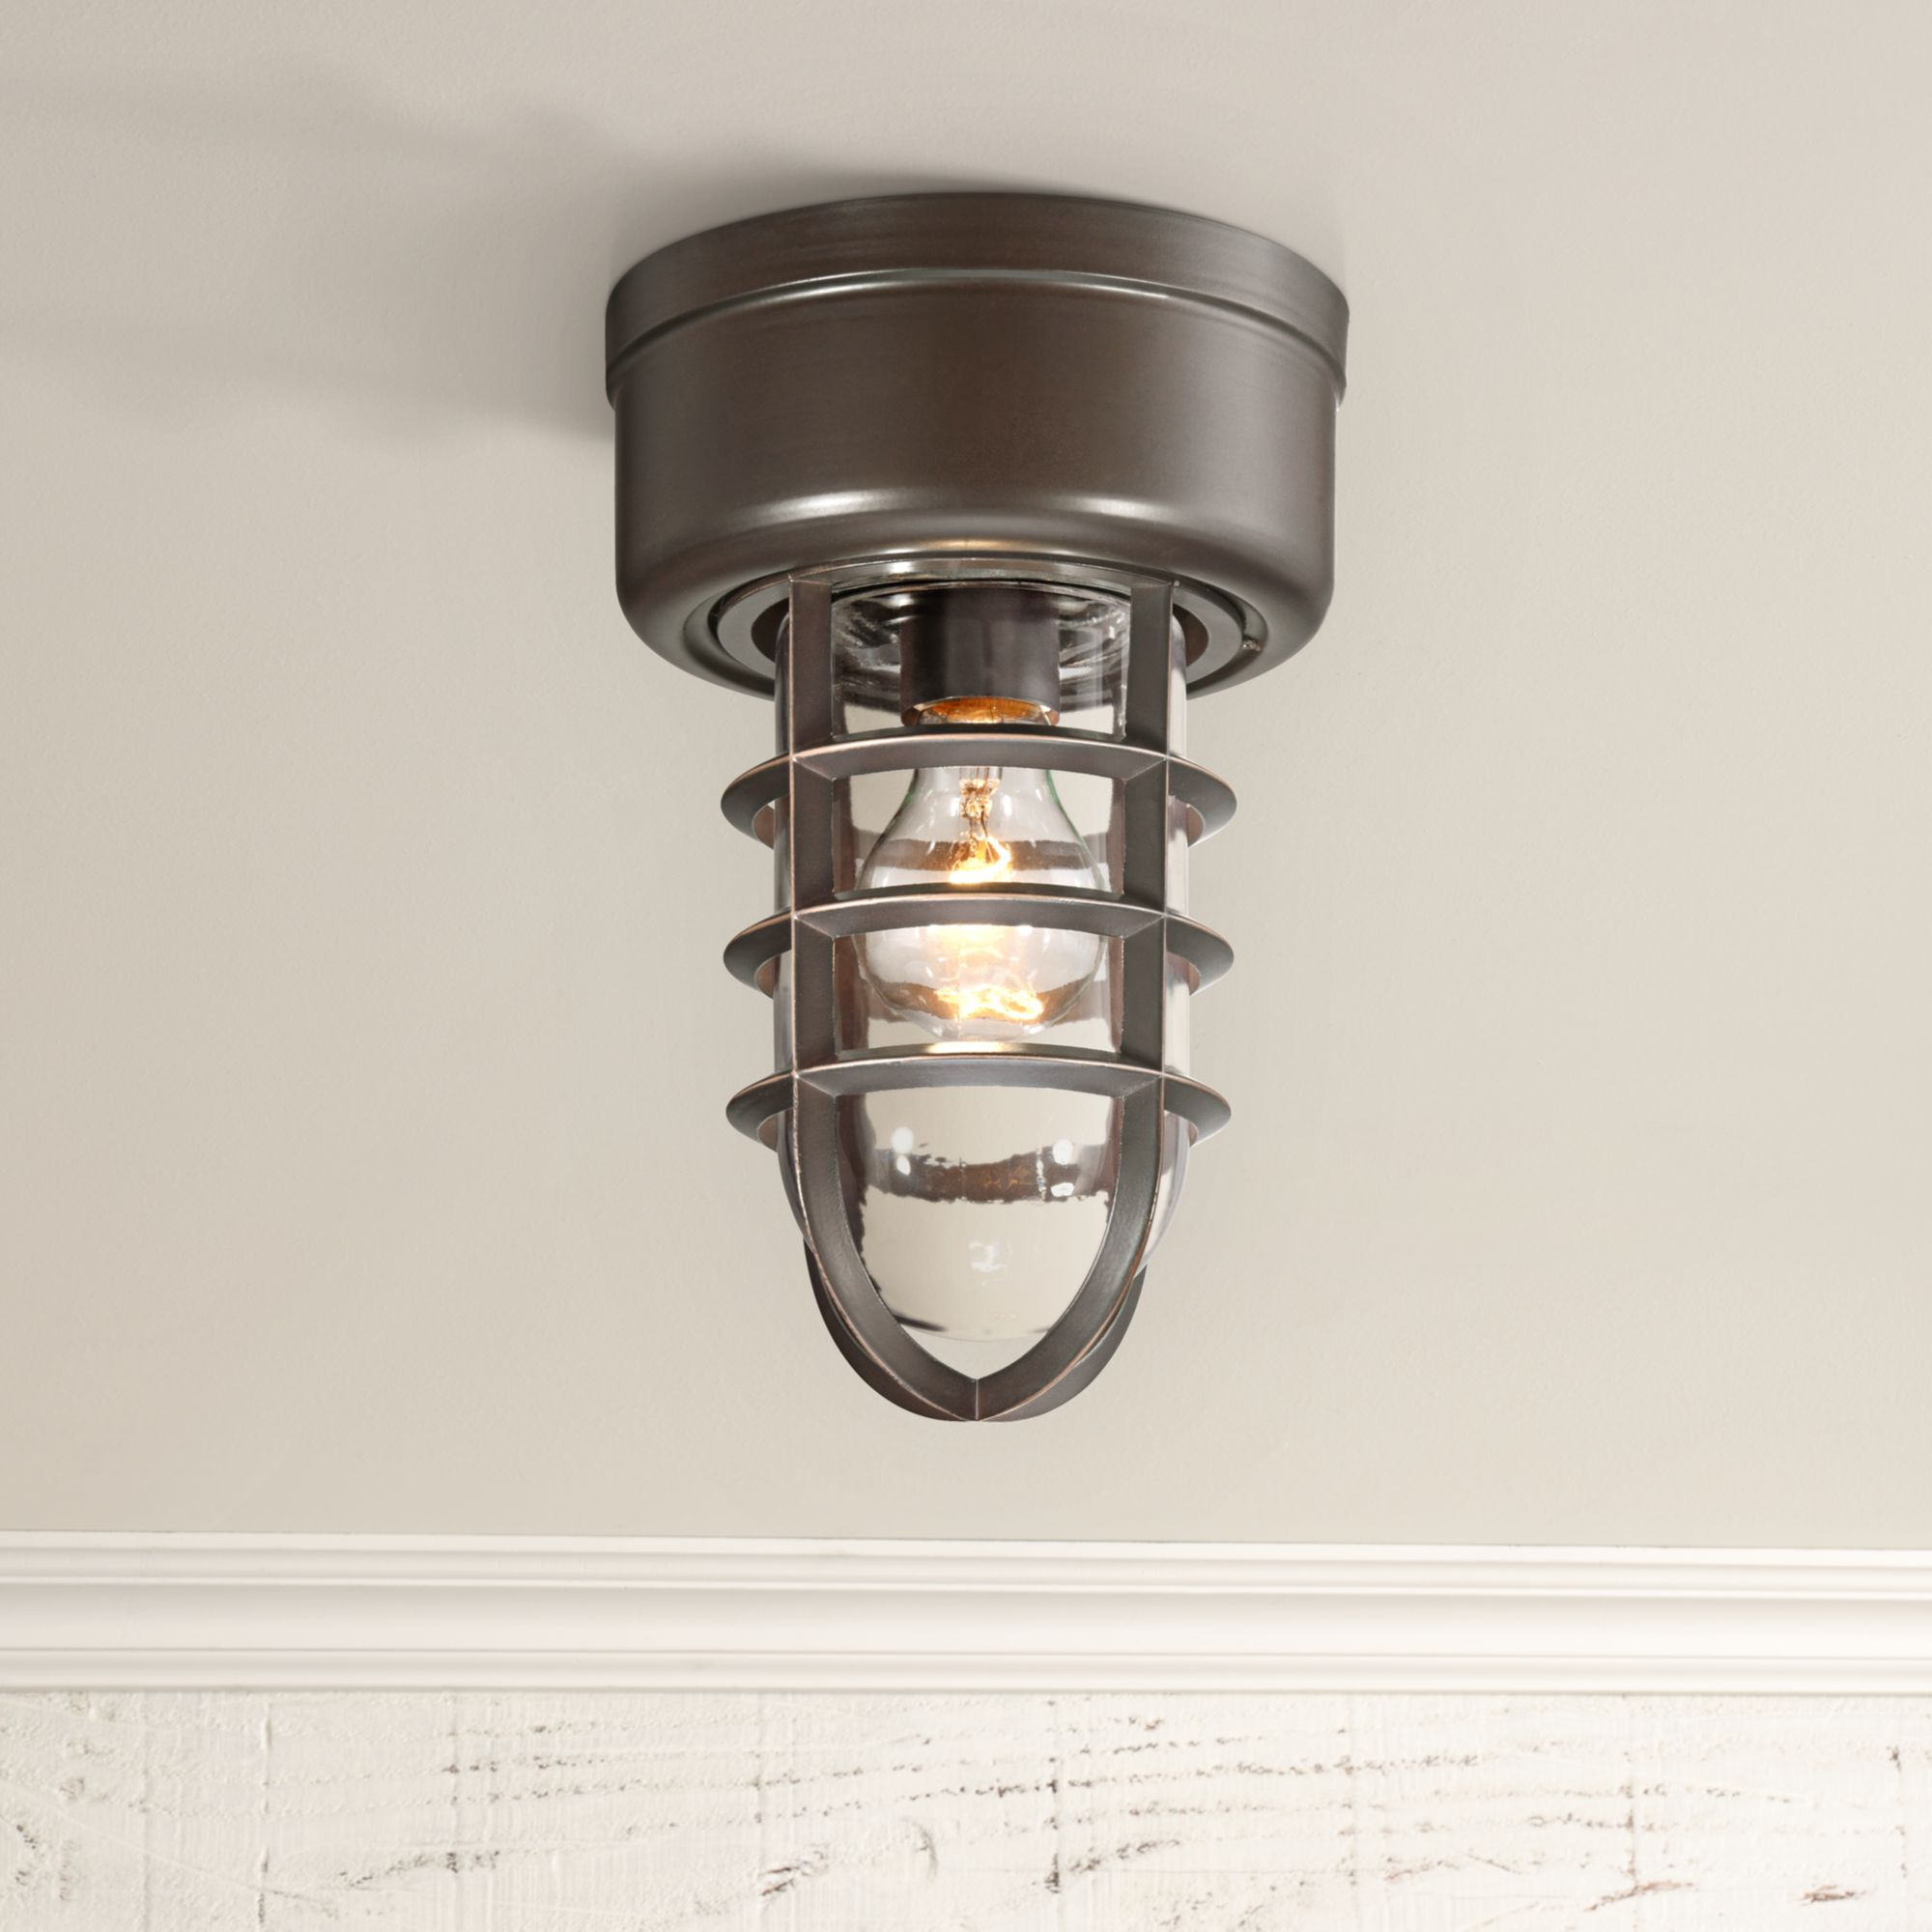 """John Timberland Nautical Outdoor Ceiling Light Fixture Bronze Cage 10 3/4"""" Clear Glass Damp Rated for Porch Patio Entryway"""